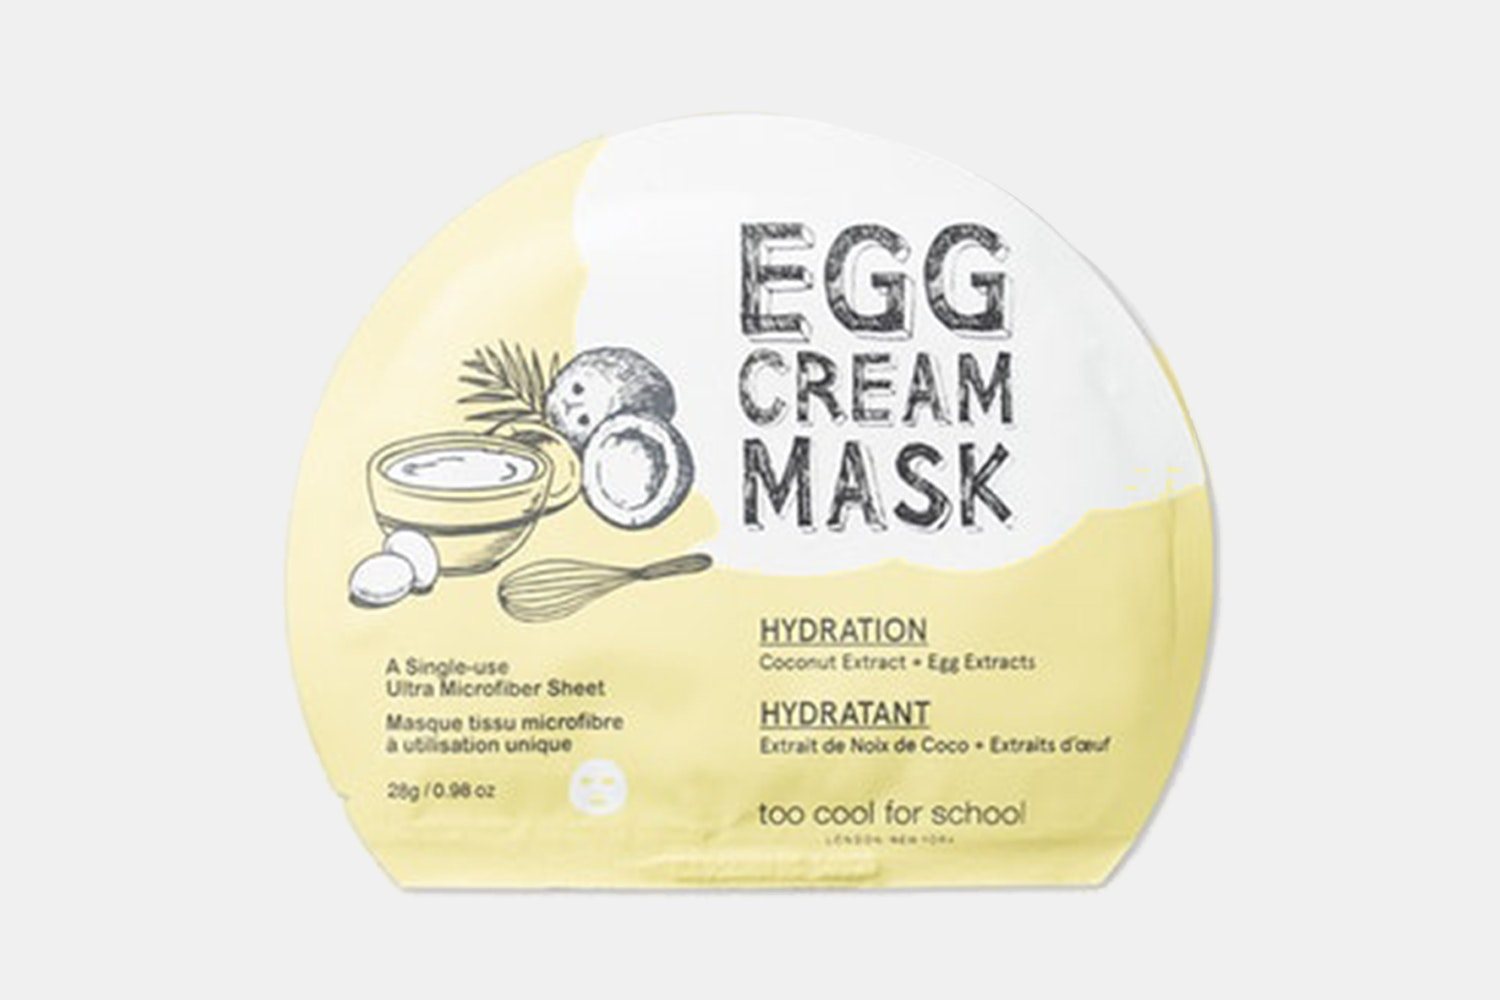 Too Cool for School Hydration Egg Cream Mask